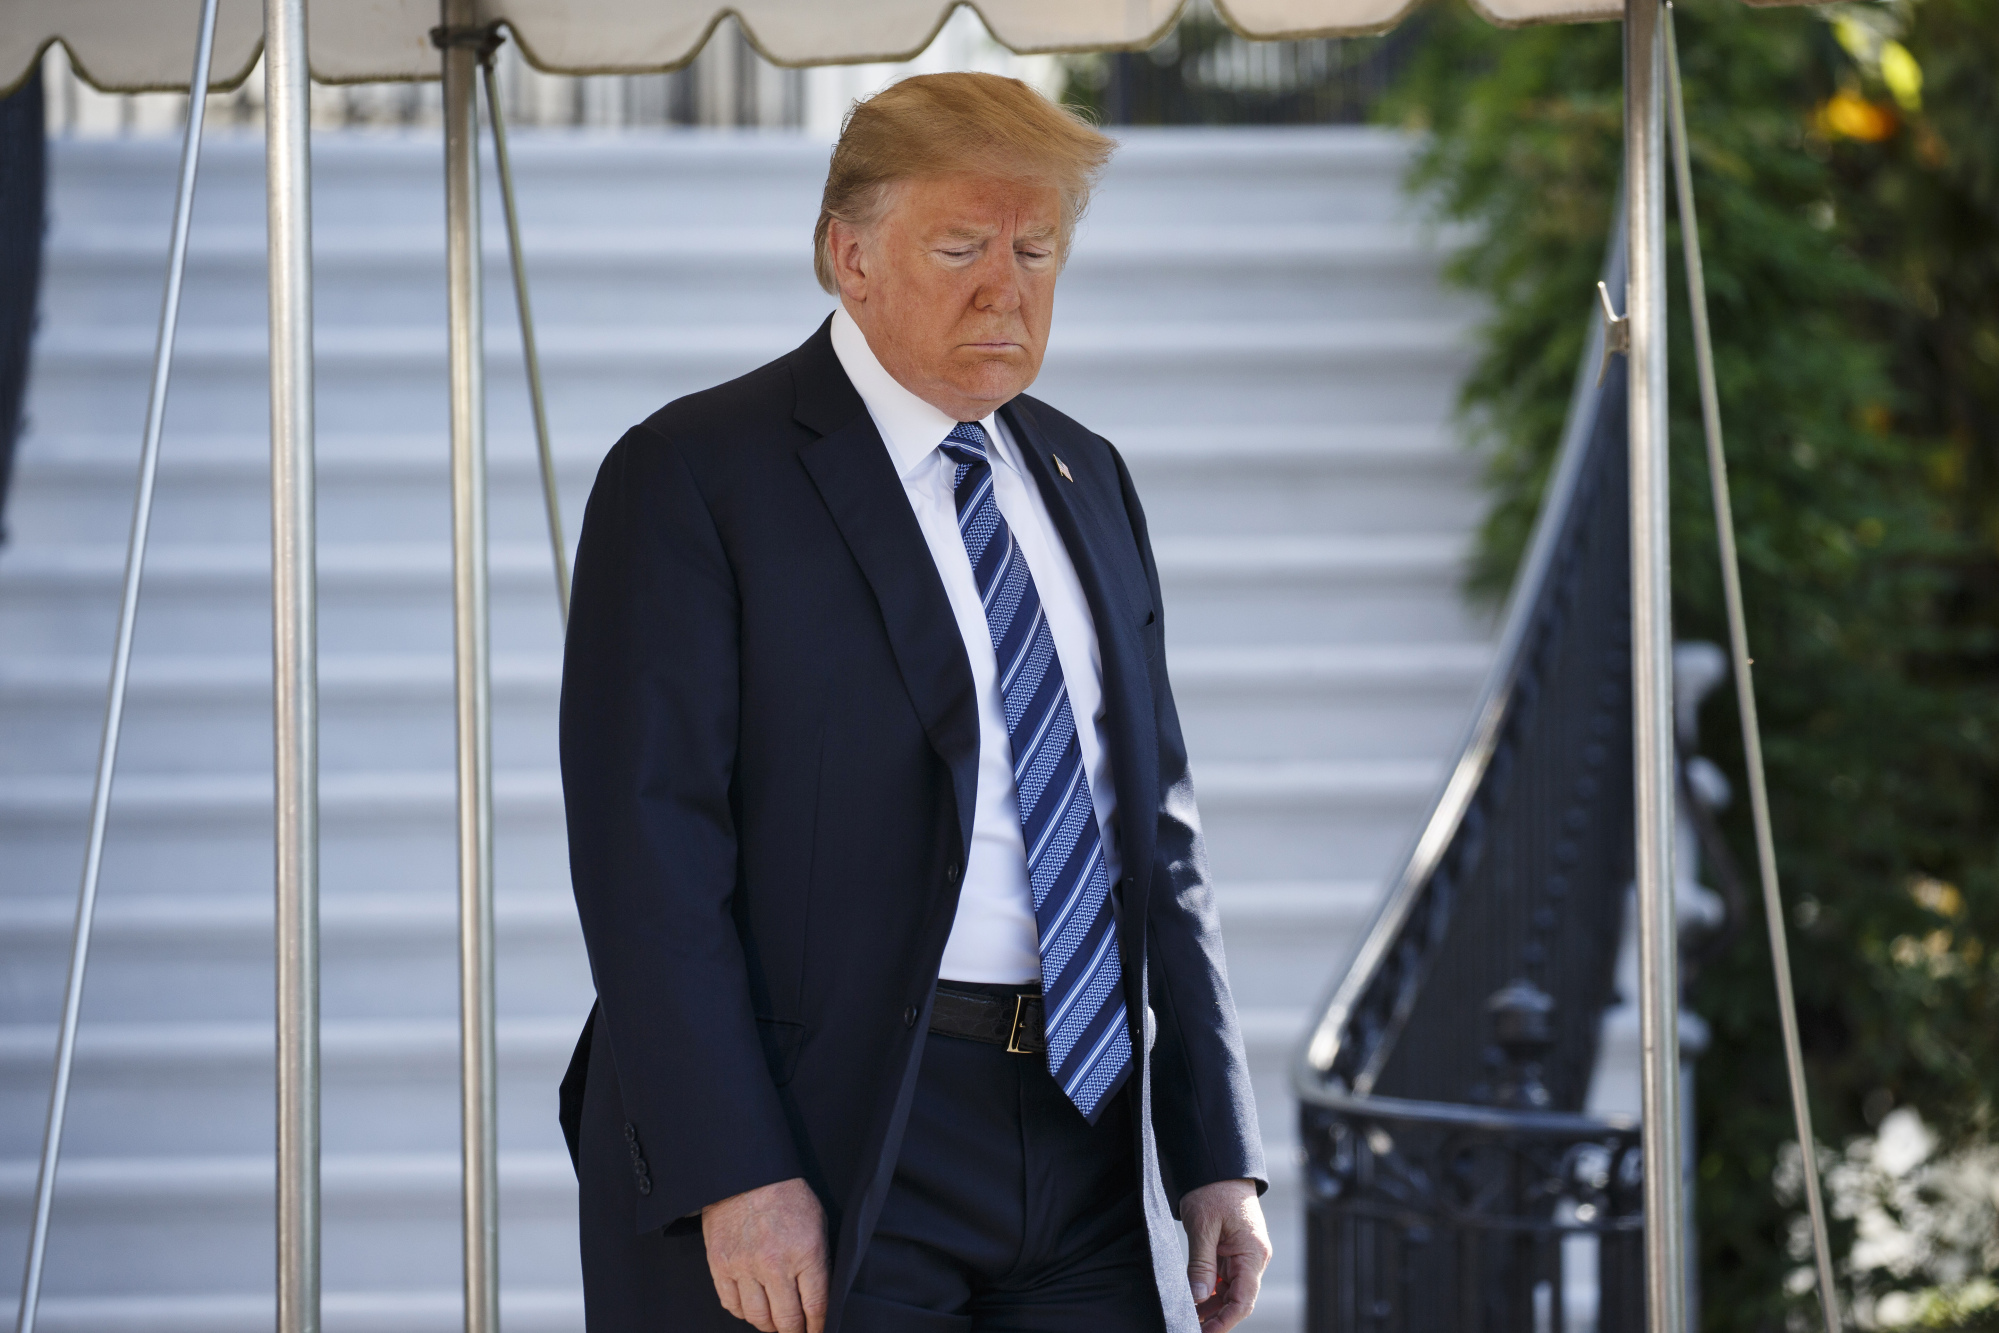 U.S. President Donald Trump exits the White House to board Marine One in Washington D.C.